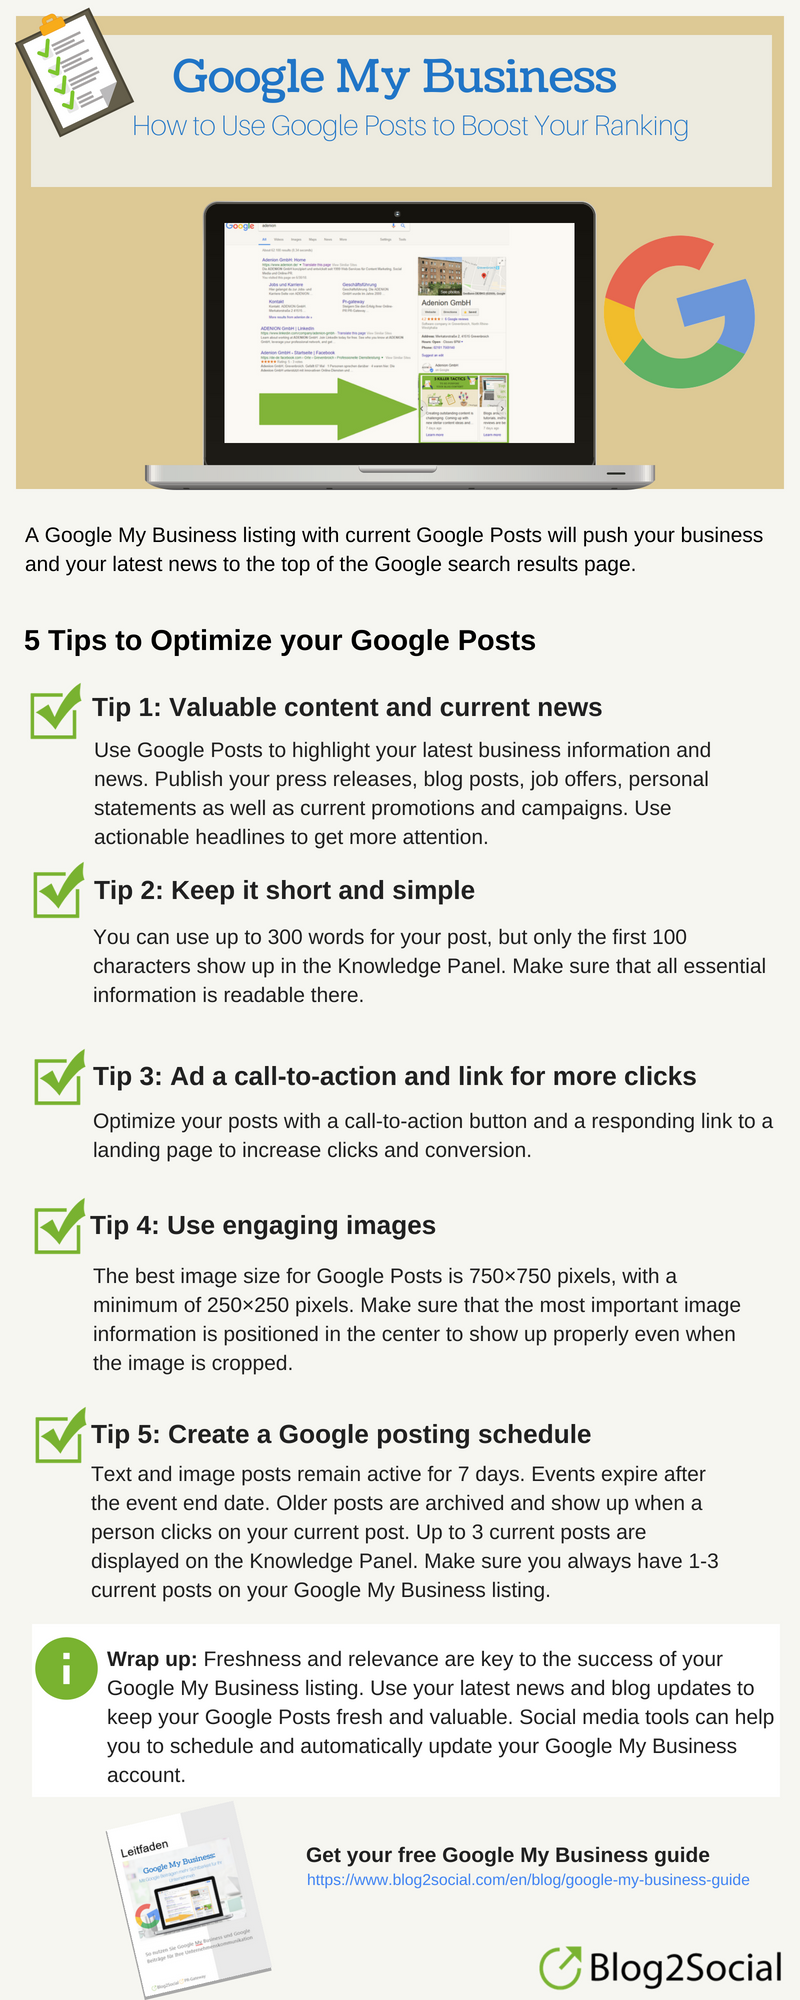 Infographic: 5 tips to optimize Google Posts for your Google My Business listing